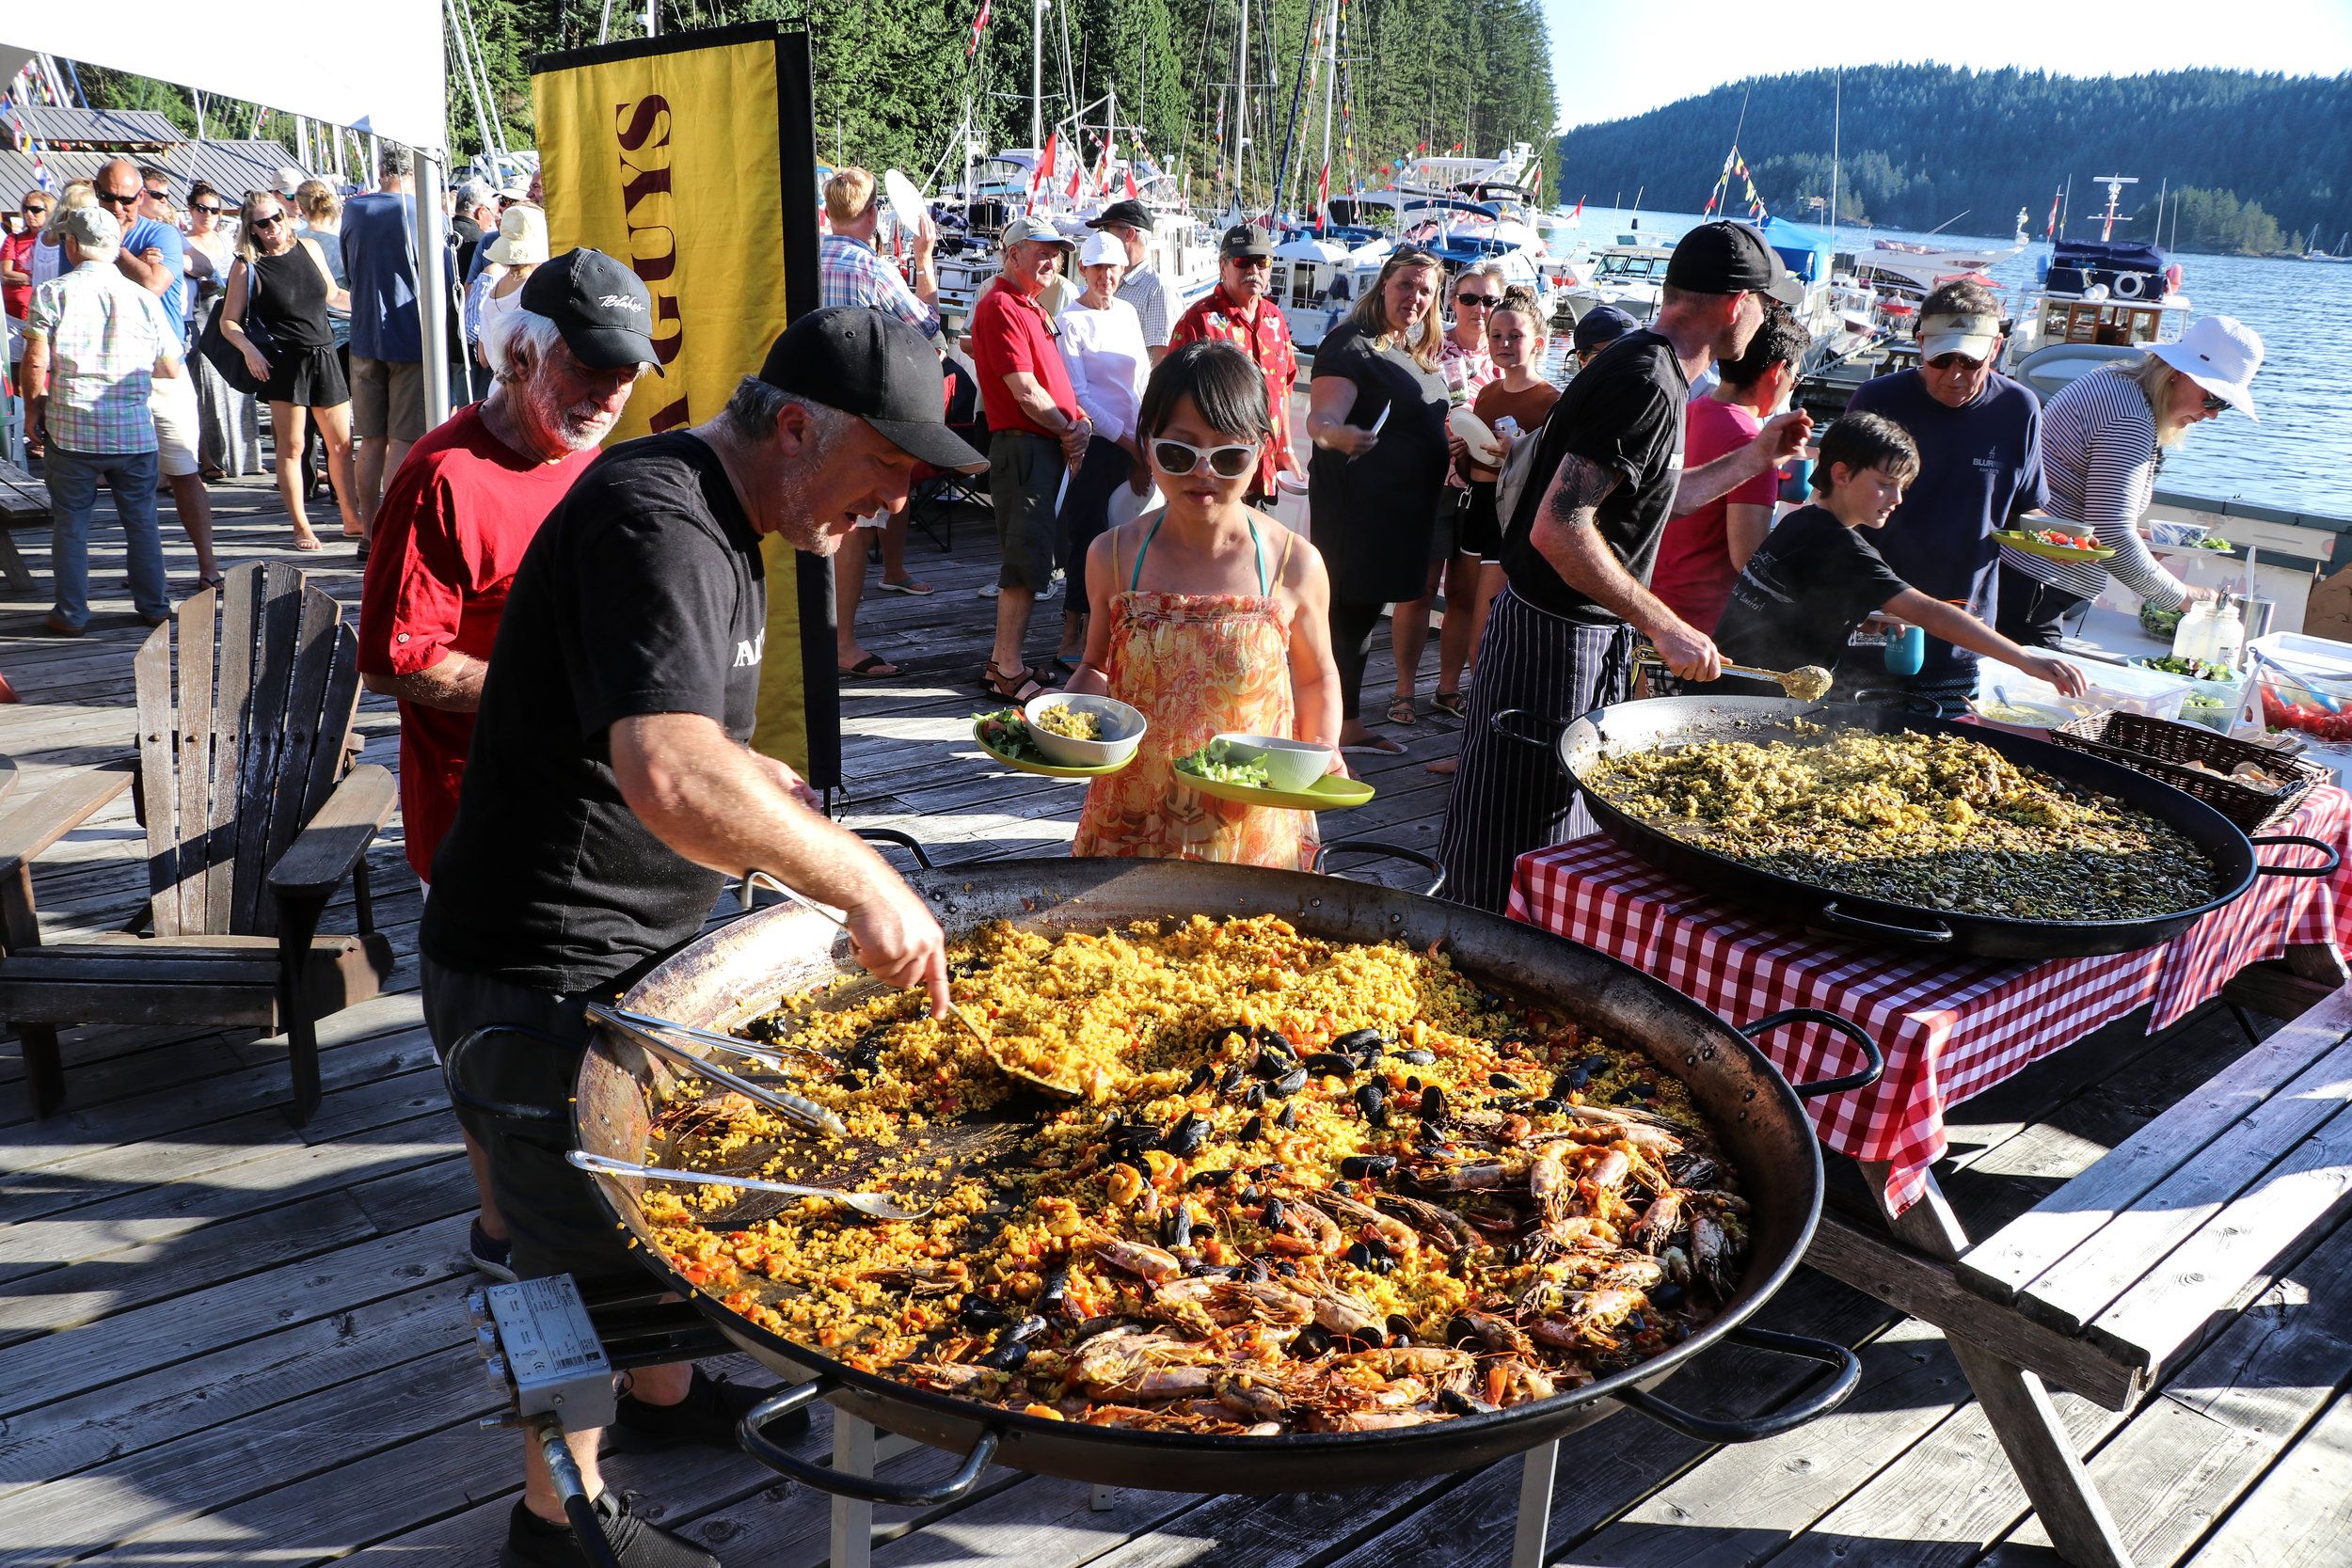 ellitobay_paellaguys_rnm-2214.jpg